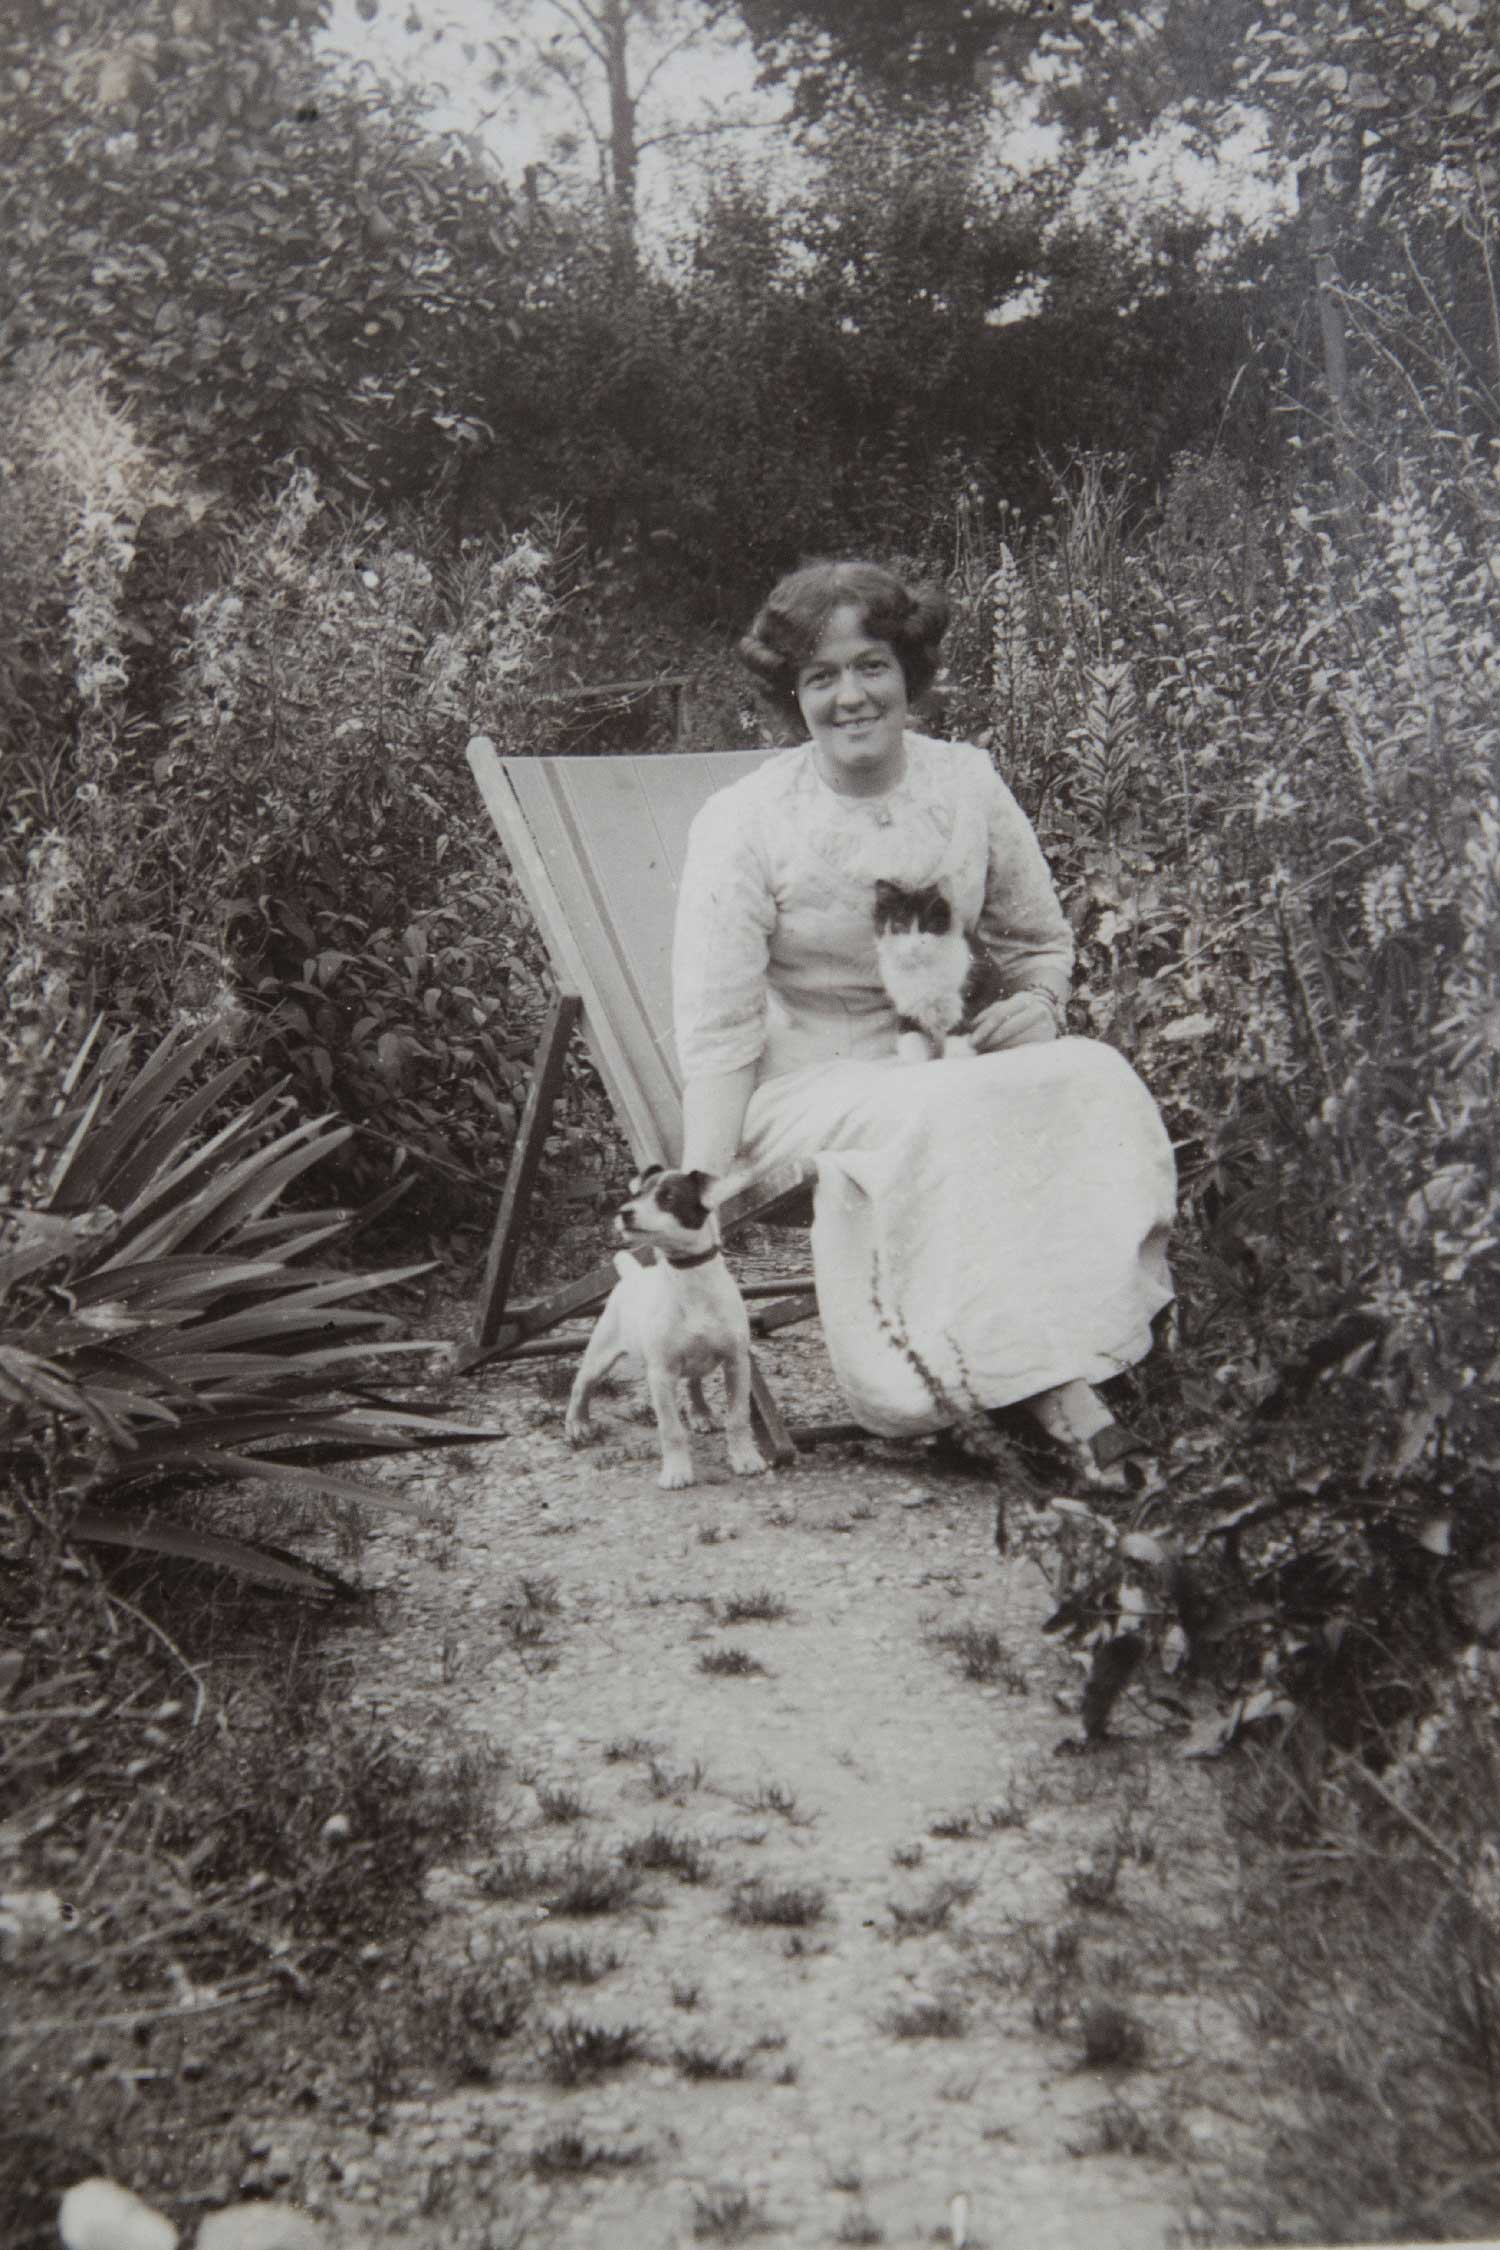 Hilda + dog and cat - date unknown - Image Credit Lesley Cain, Jane Wood & Lauren Hall ( Great, Great / Great Nieces )